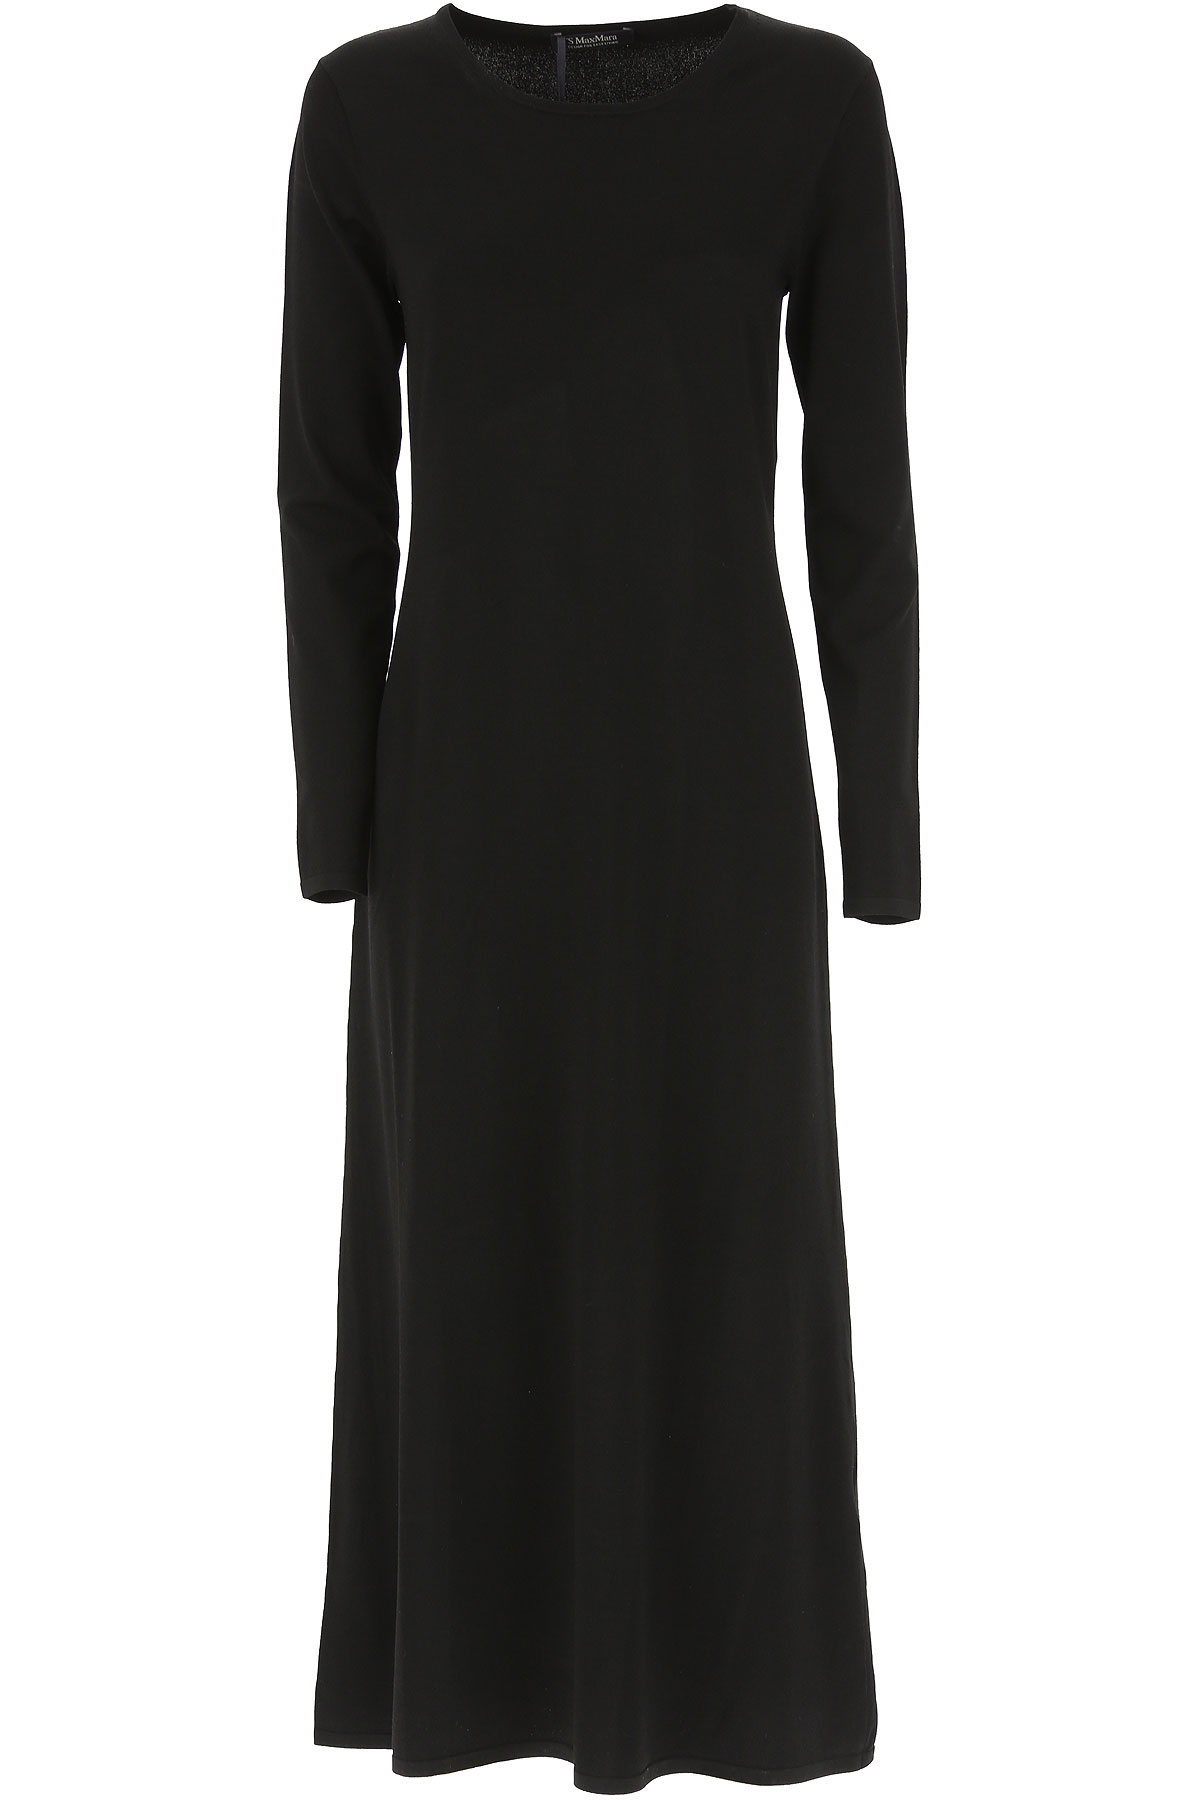 Max Mara Dress for Women, Evening Cocktail Party On Sale, Black, Viscose, 2019, 4 6